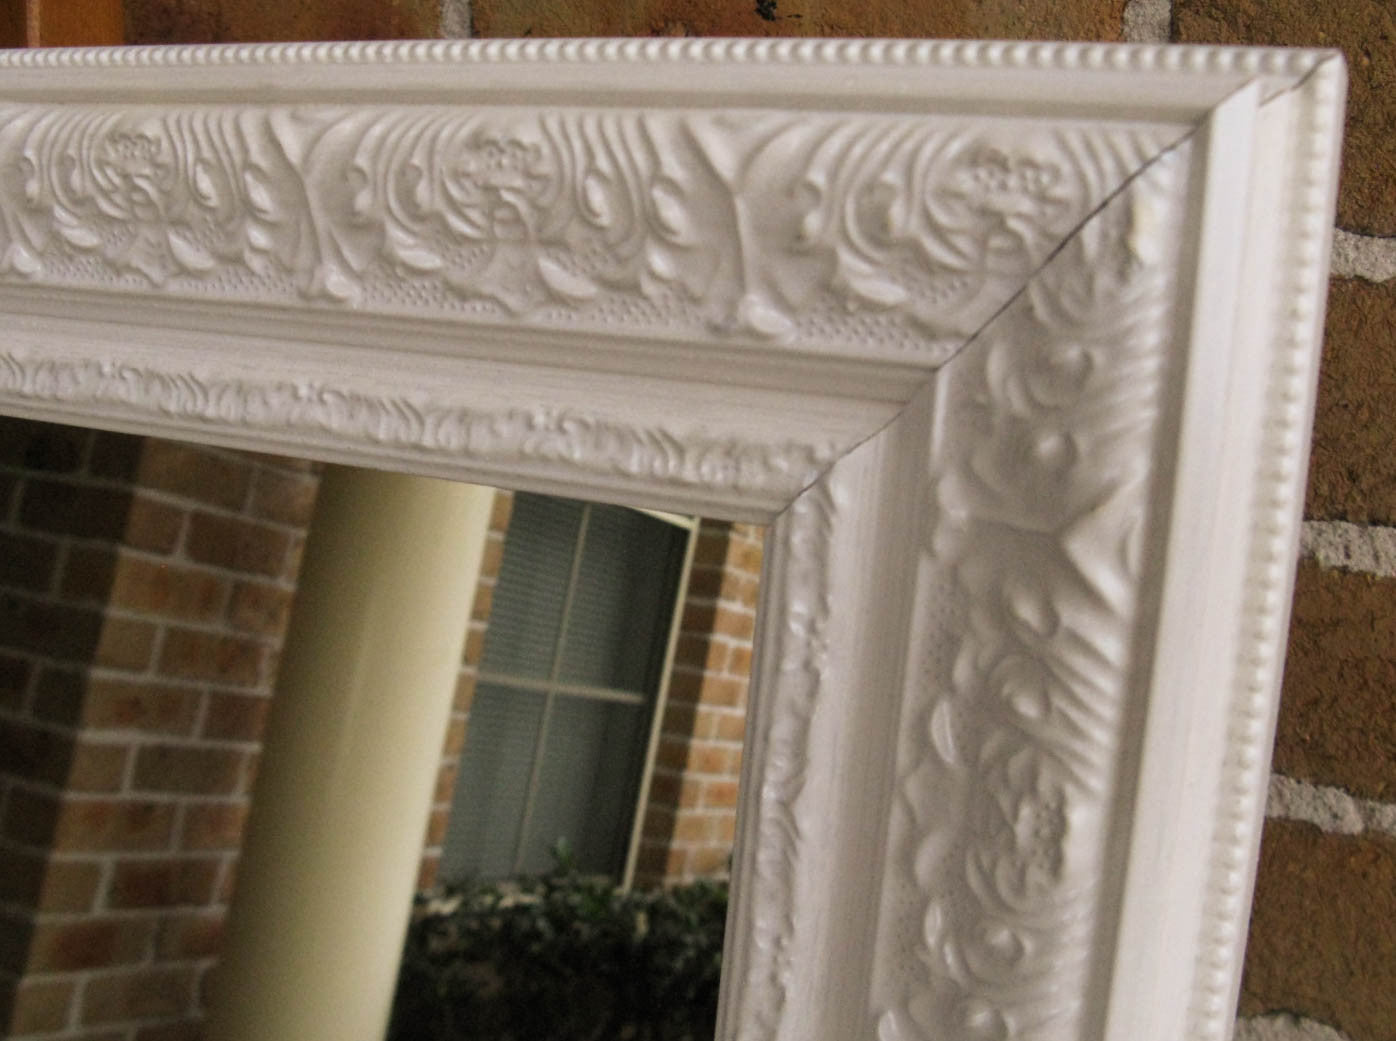 Viera White Ornate Decorative Large Wall Mirror Image Enhancement Image Enhancement Mirrors